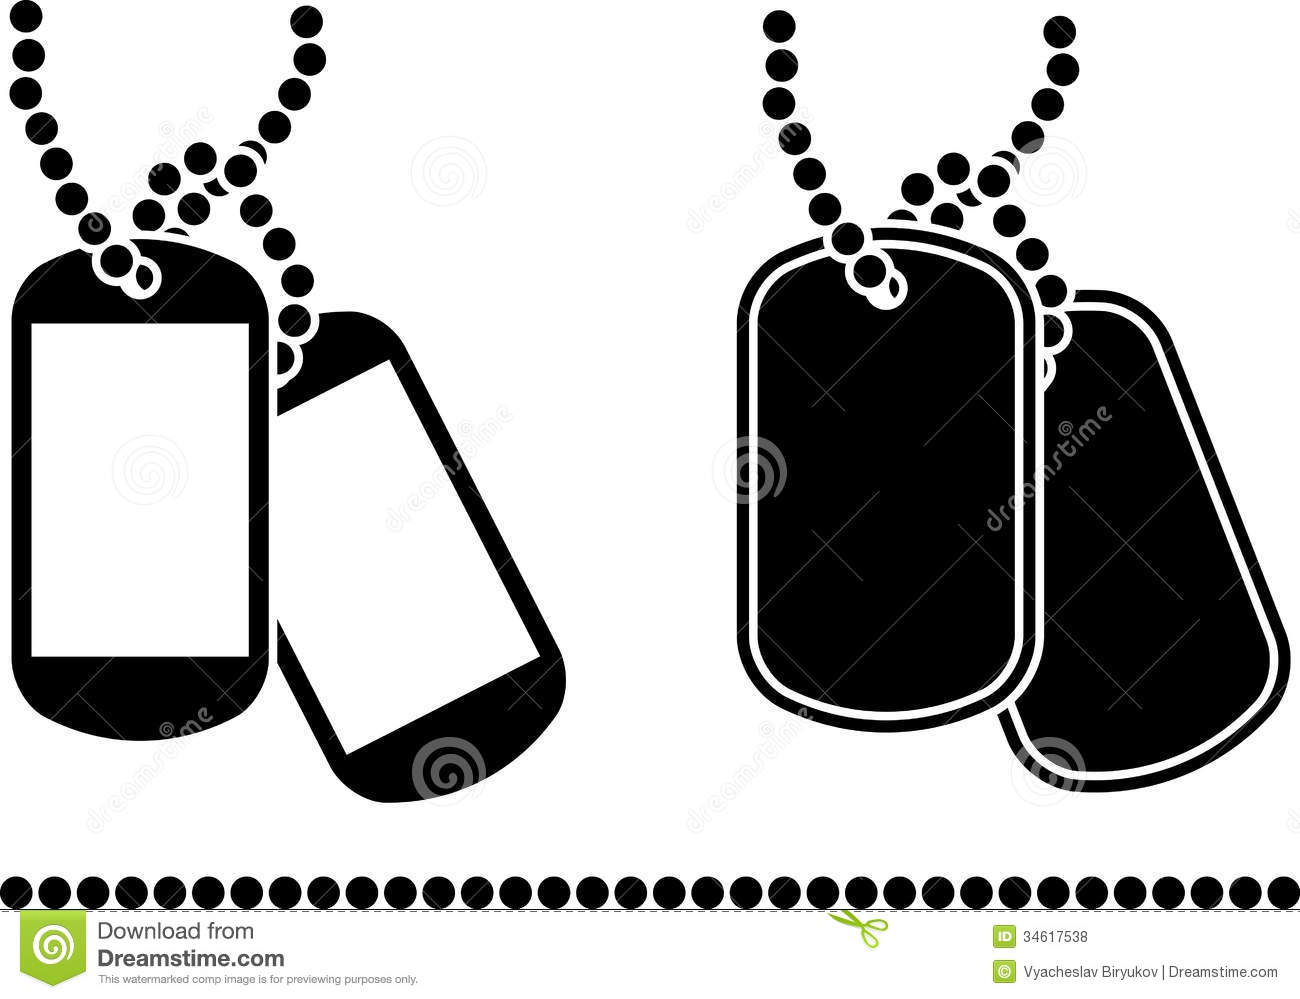 Stencils Of Dog Tags Royalty Free Stock Photos   Image  34617538